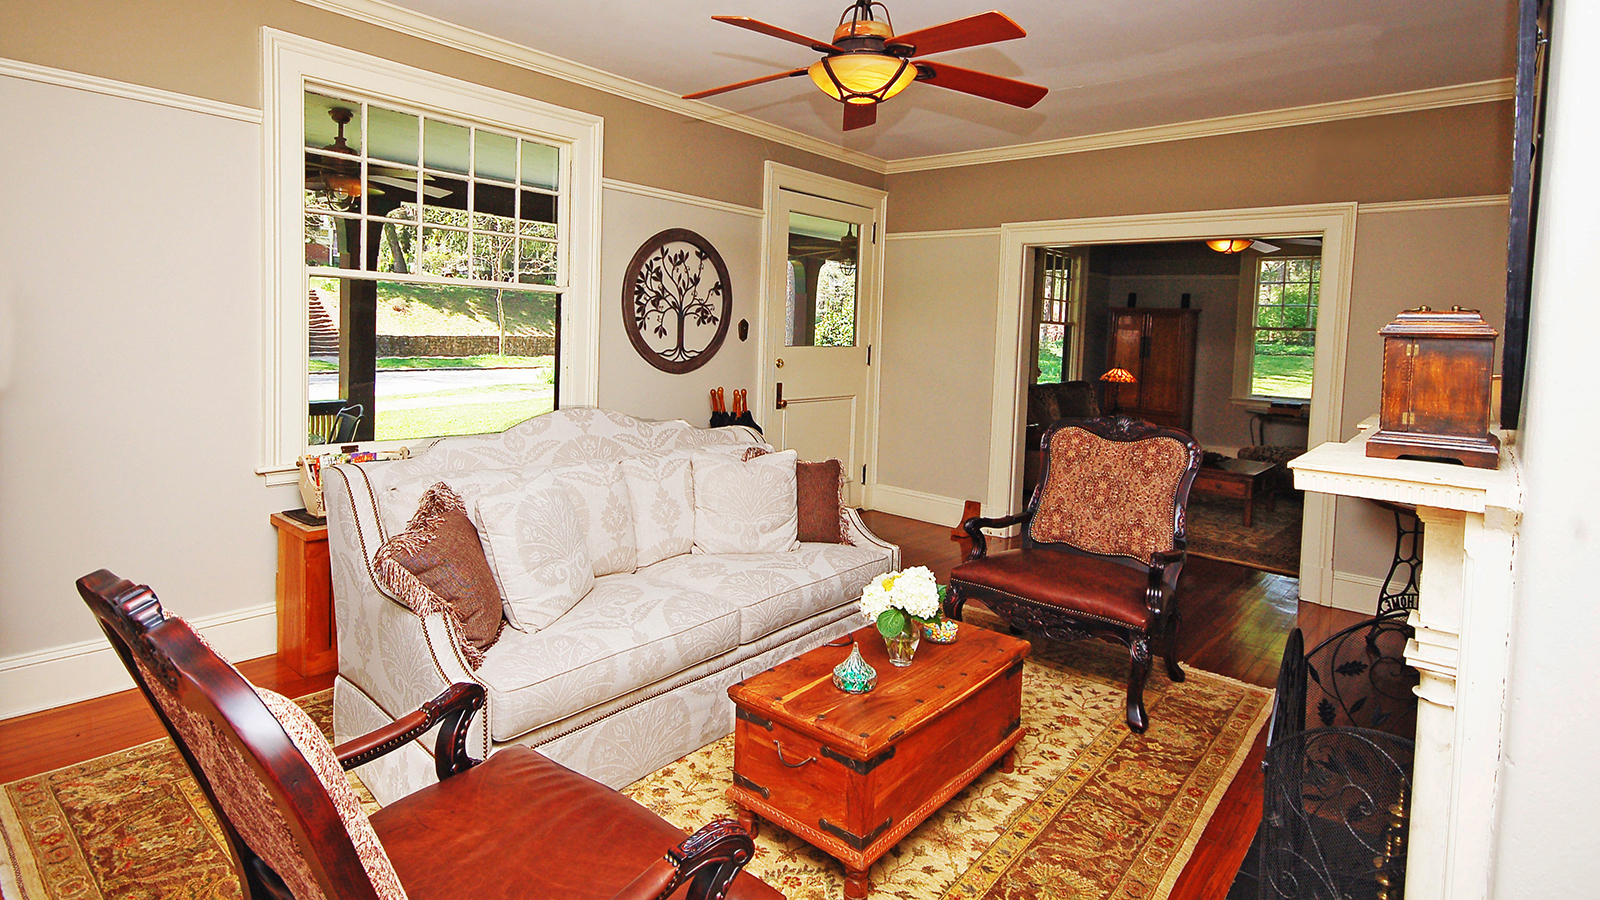 Main Entrance, Parlor Sitting Area with Fireplace